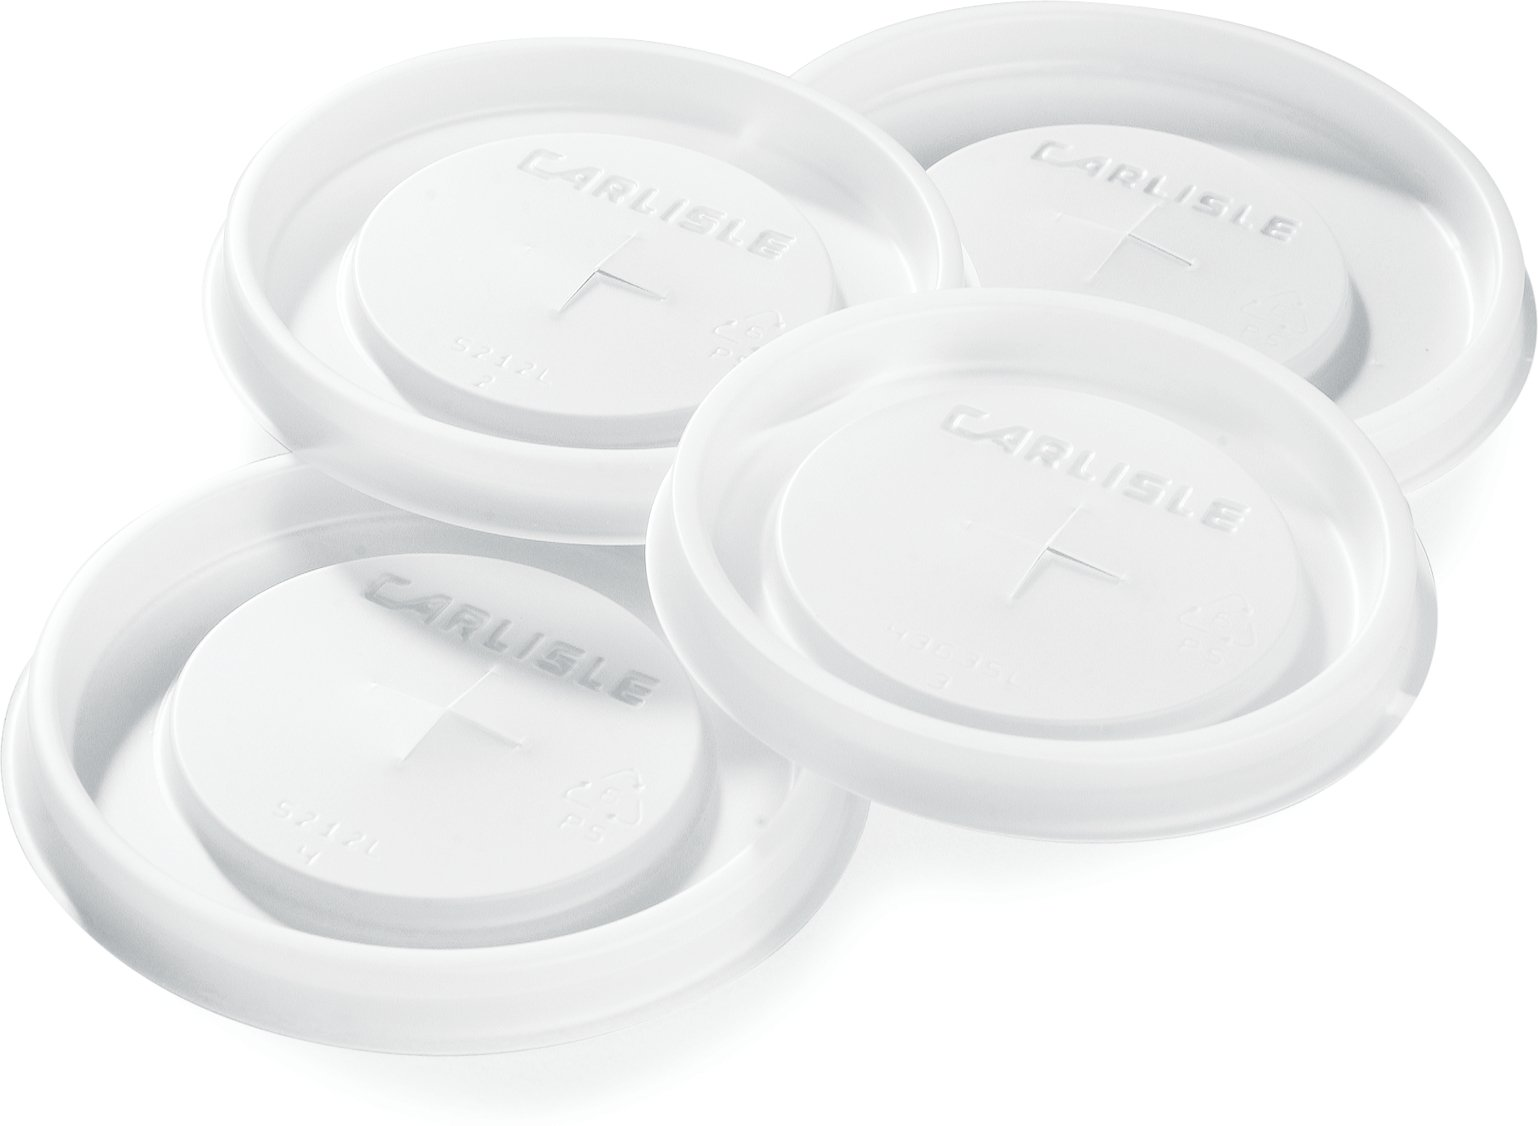 Carlisle 5109L30 Polystyrene Tumbler Lid for 9.5-oz., Translucent (Case of 1000) by Carlisle